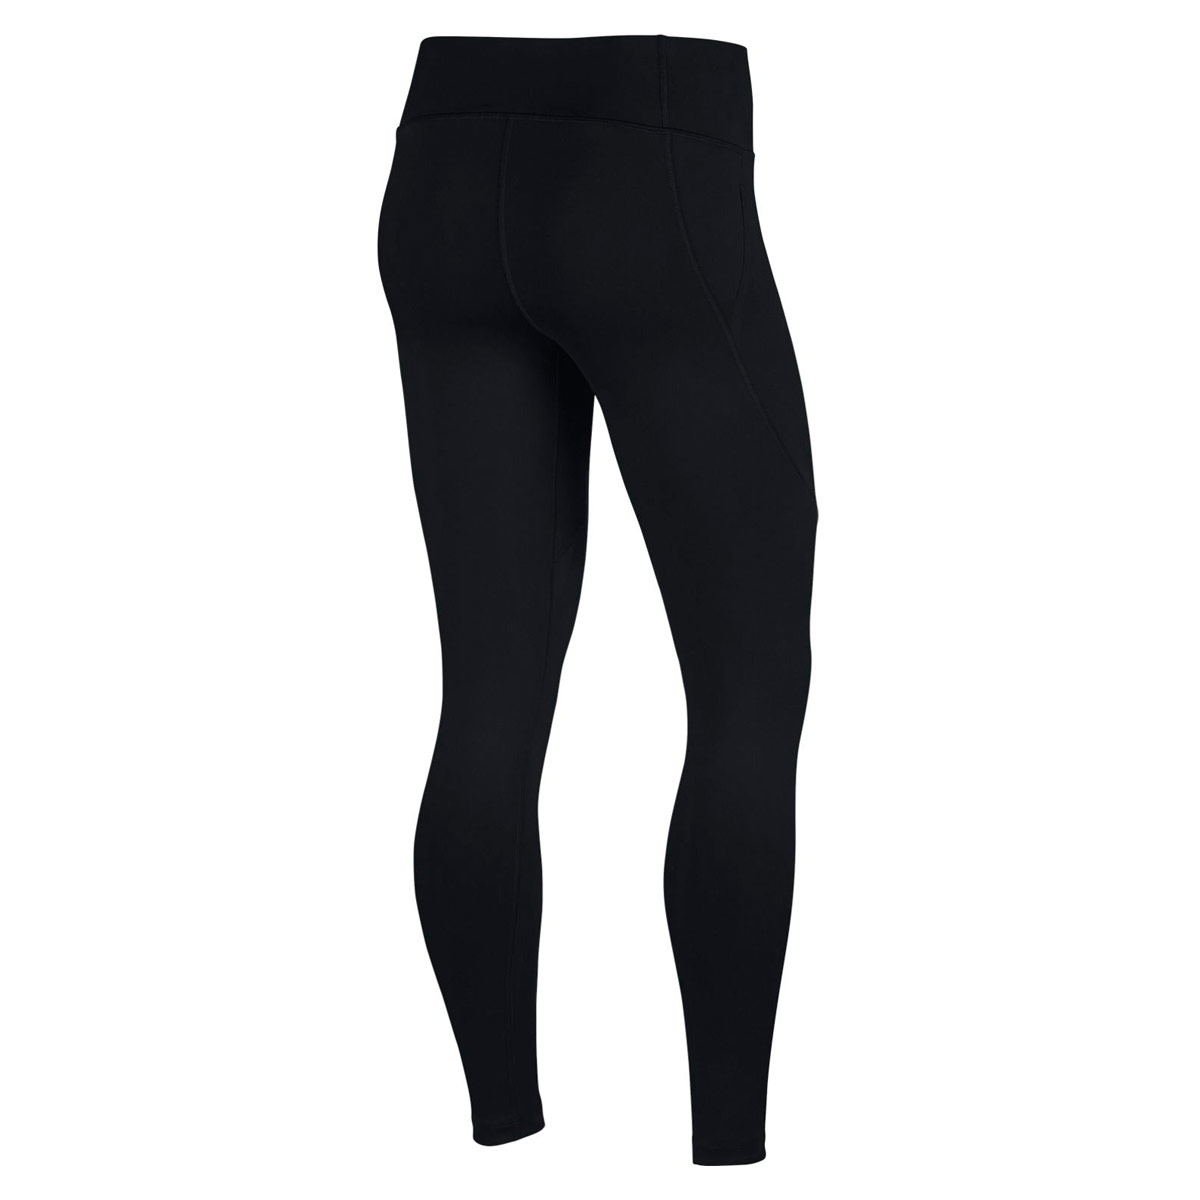 be93a6ae28ccf Nike Power Pocket Lux Tights - Fitness trousers for Women - Black | 21RUN